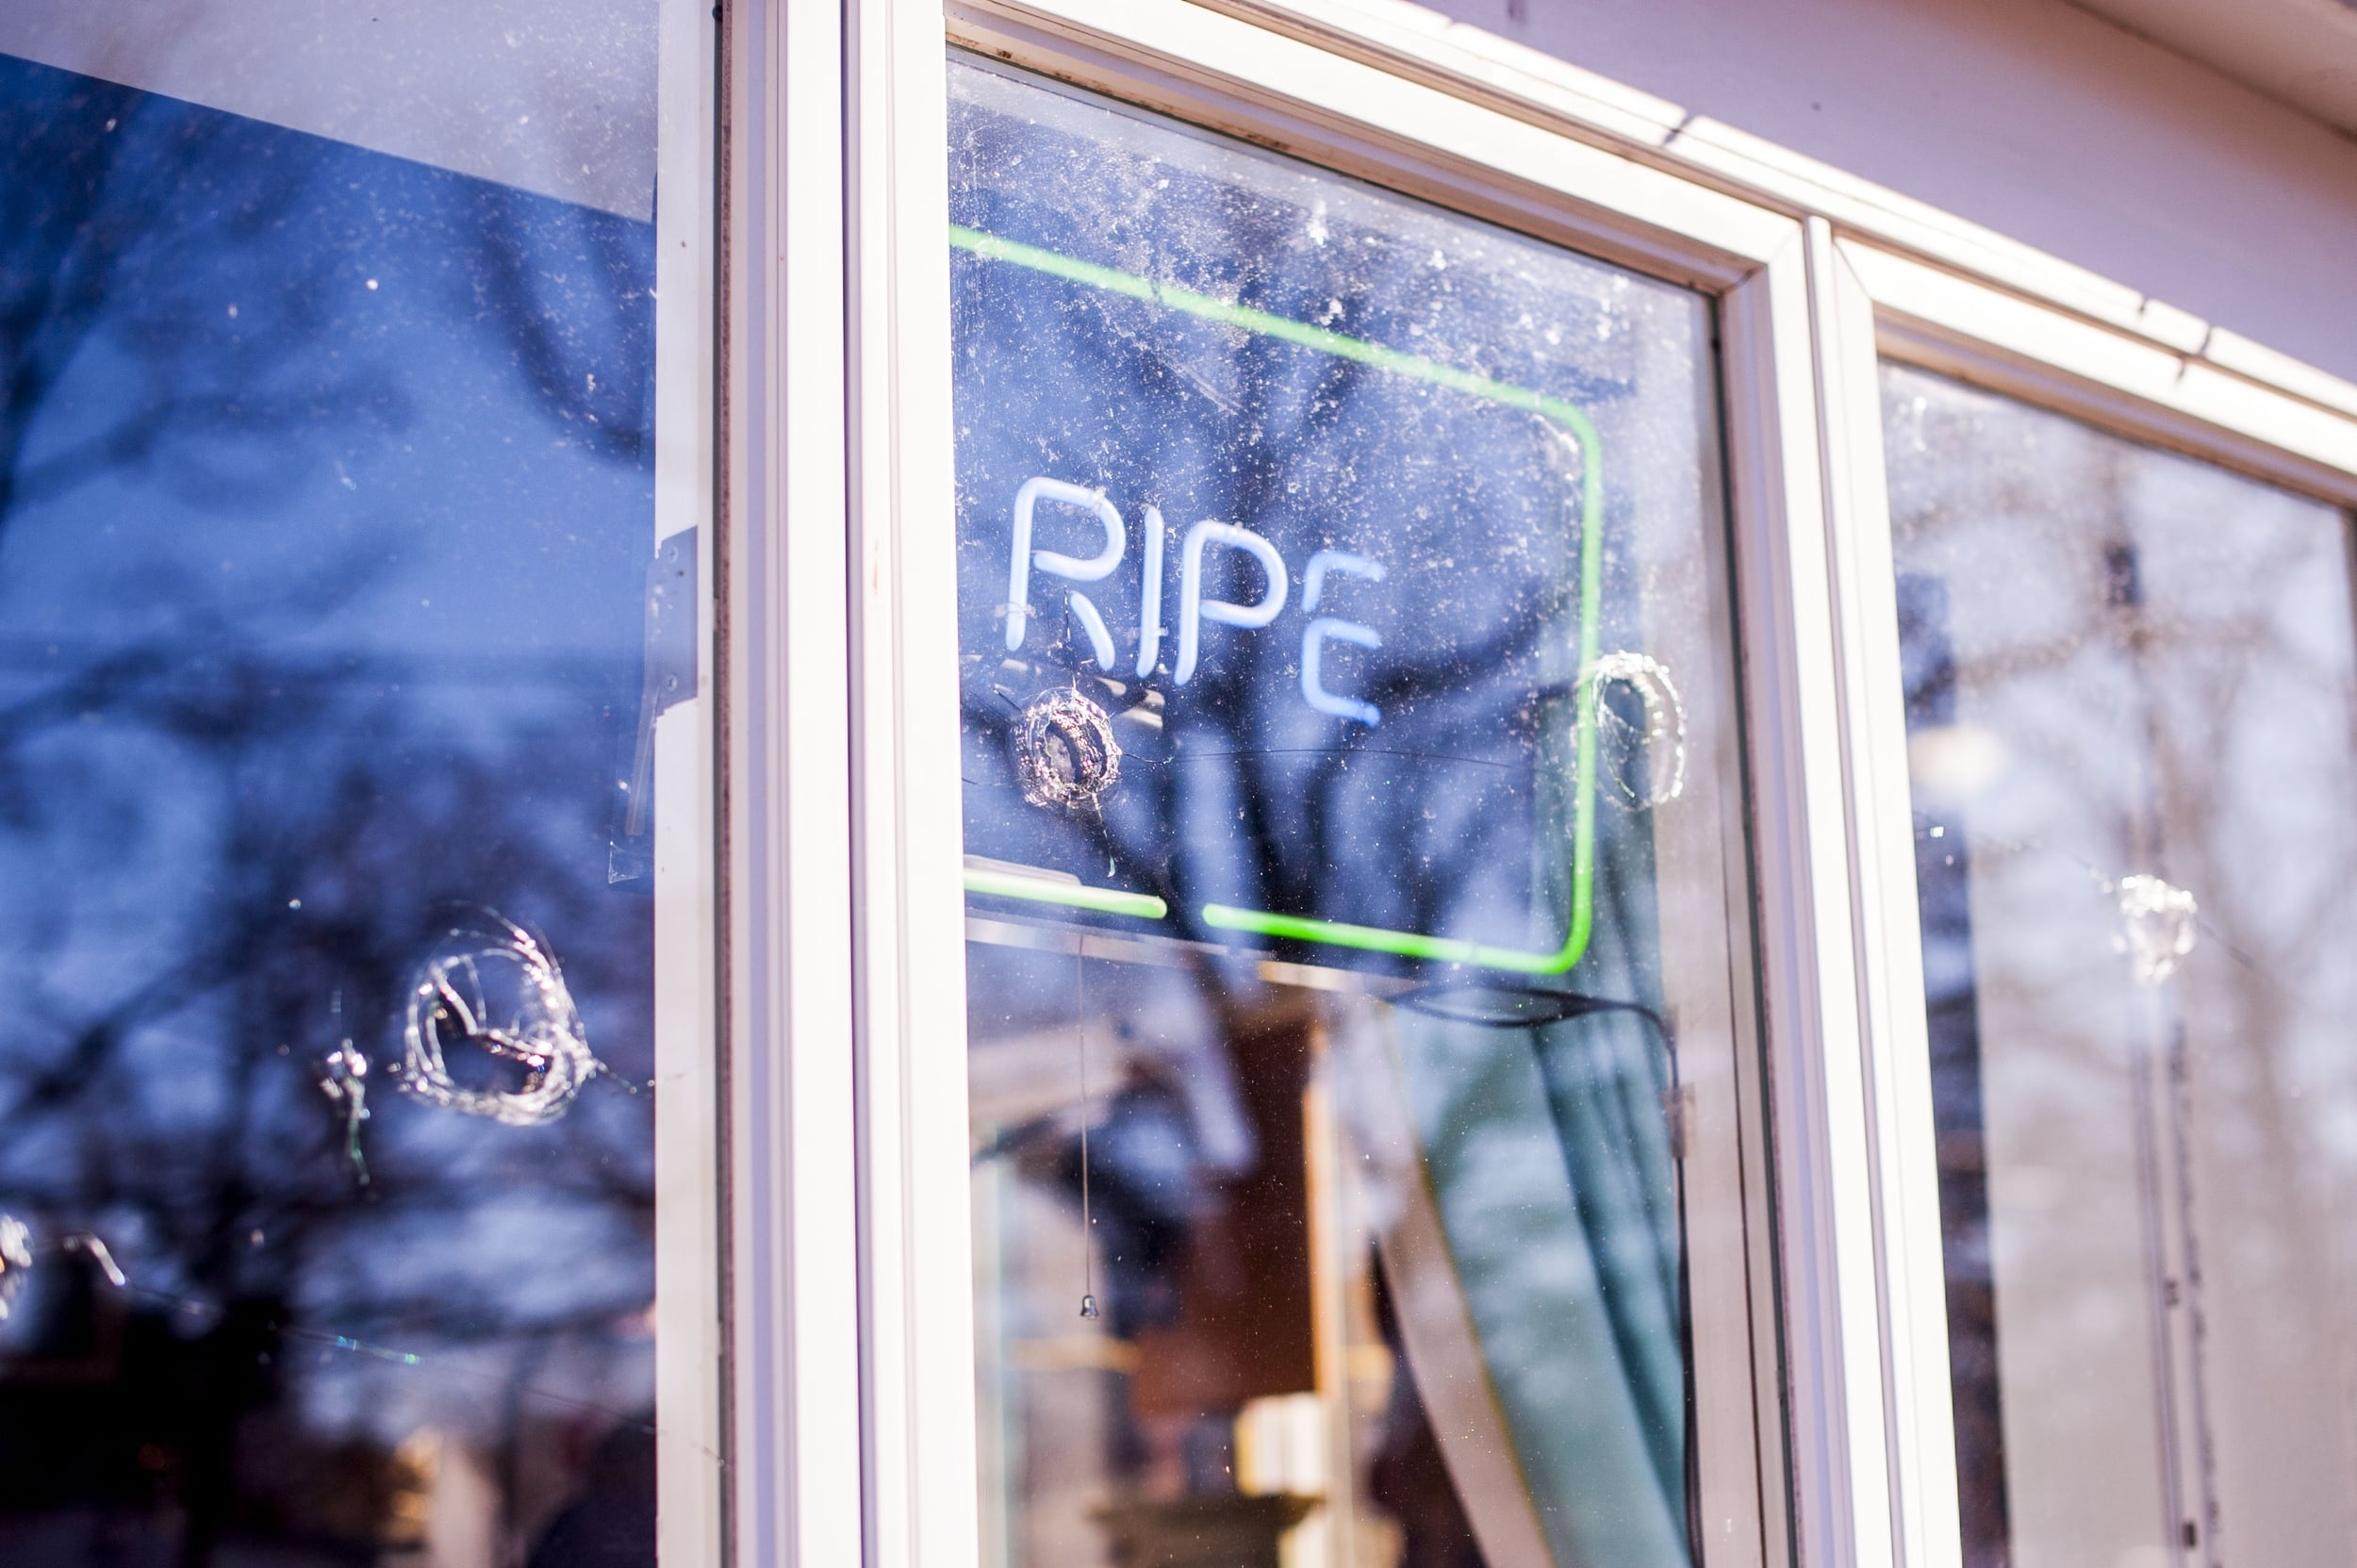 The owner of Ripe Art Gallery found 11 holes in the store's windows on the morning of Jan. 13 from what appeared to be BB gun shots.